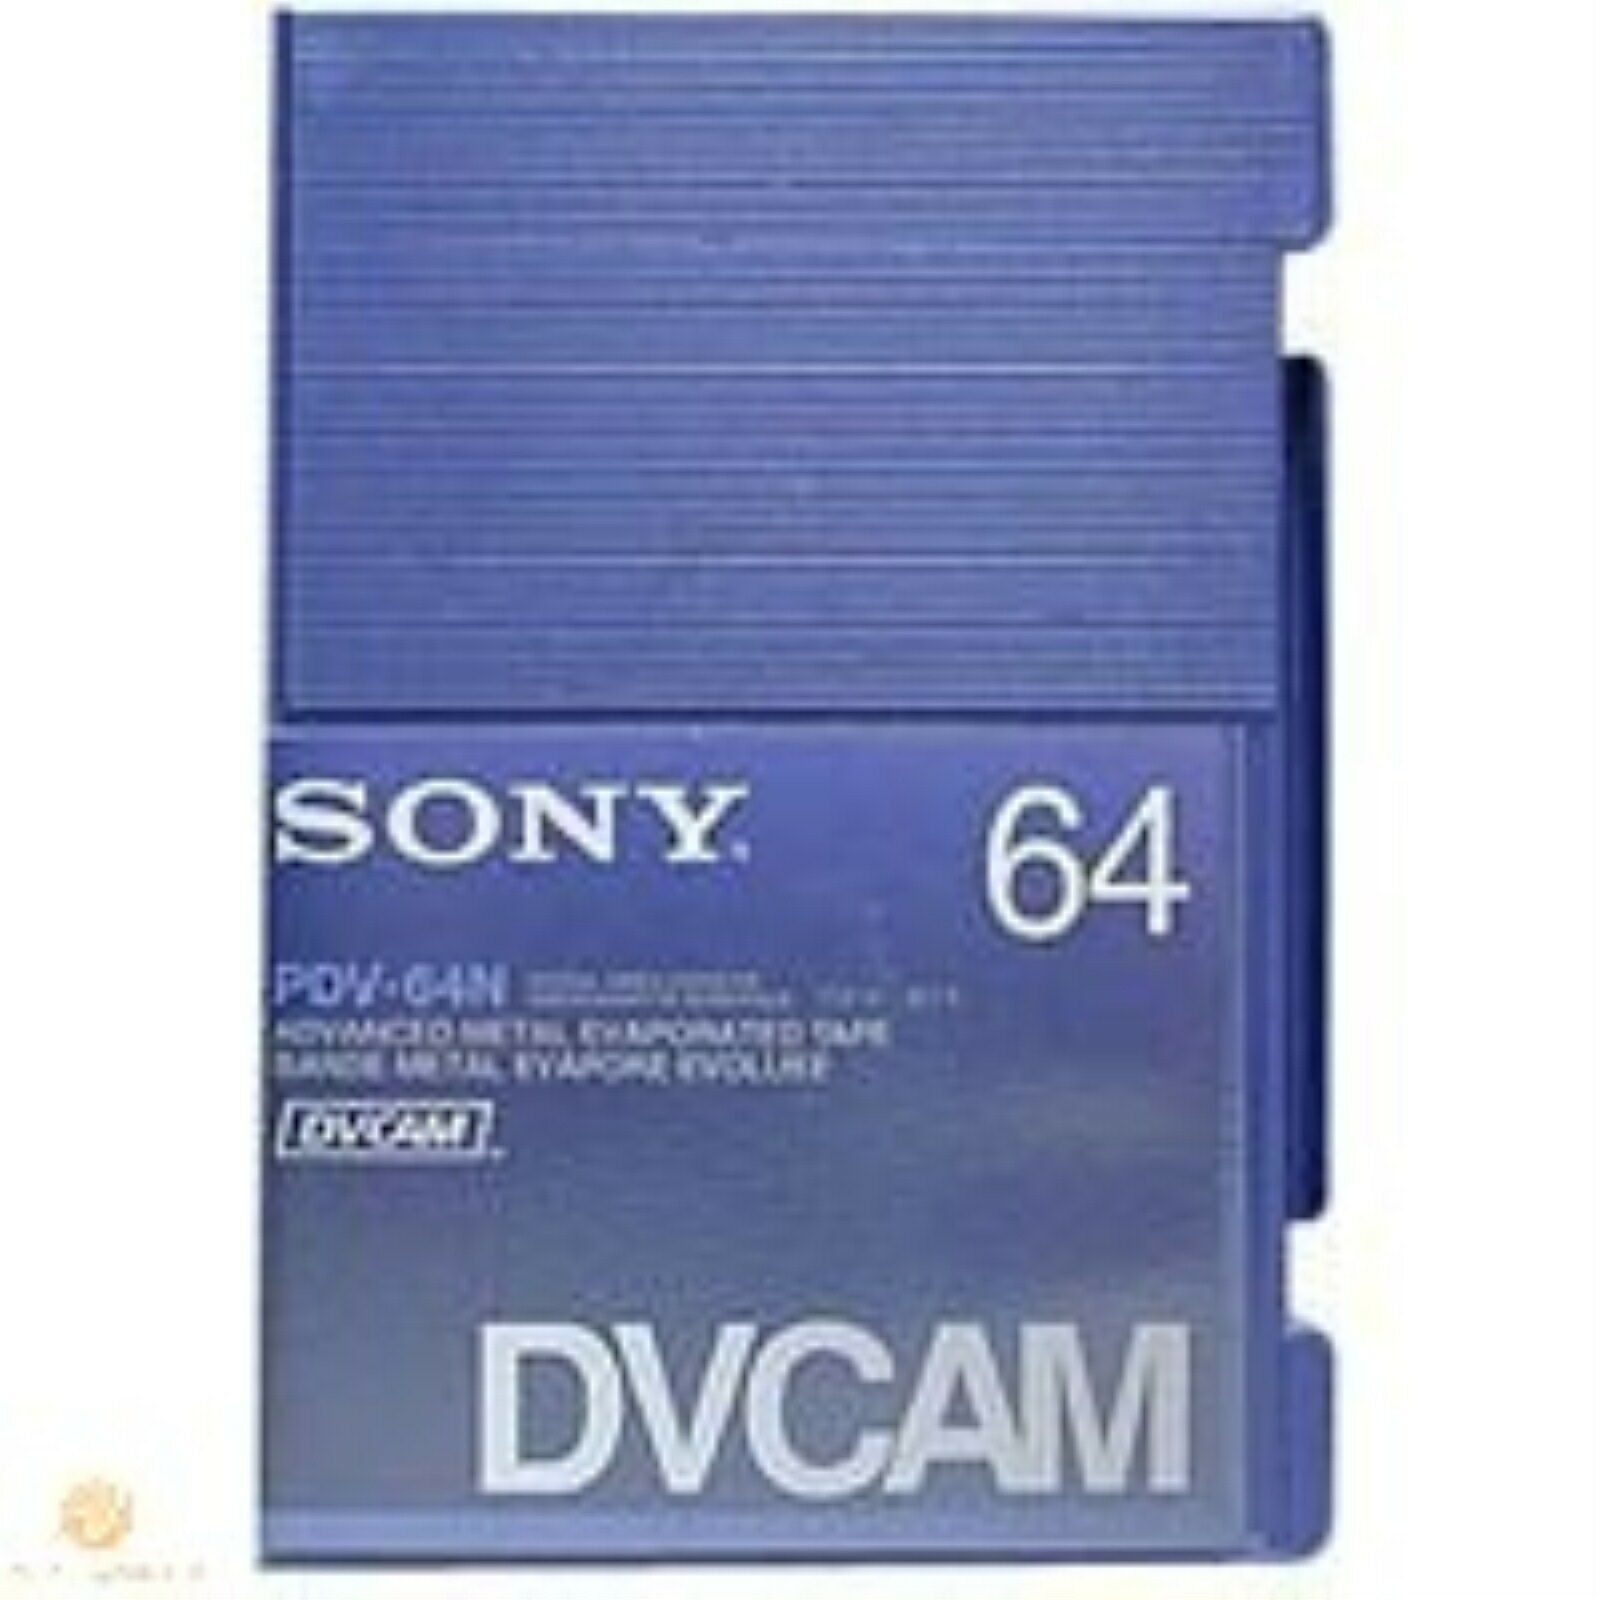 5 Sony PDV-64N HD Cam Tape 184min DLC Protective Layer Durable - UK NEW Genuine